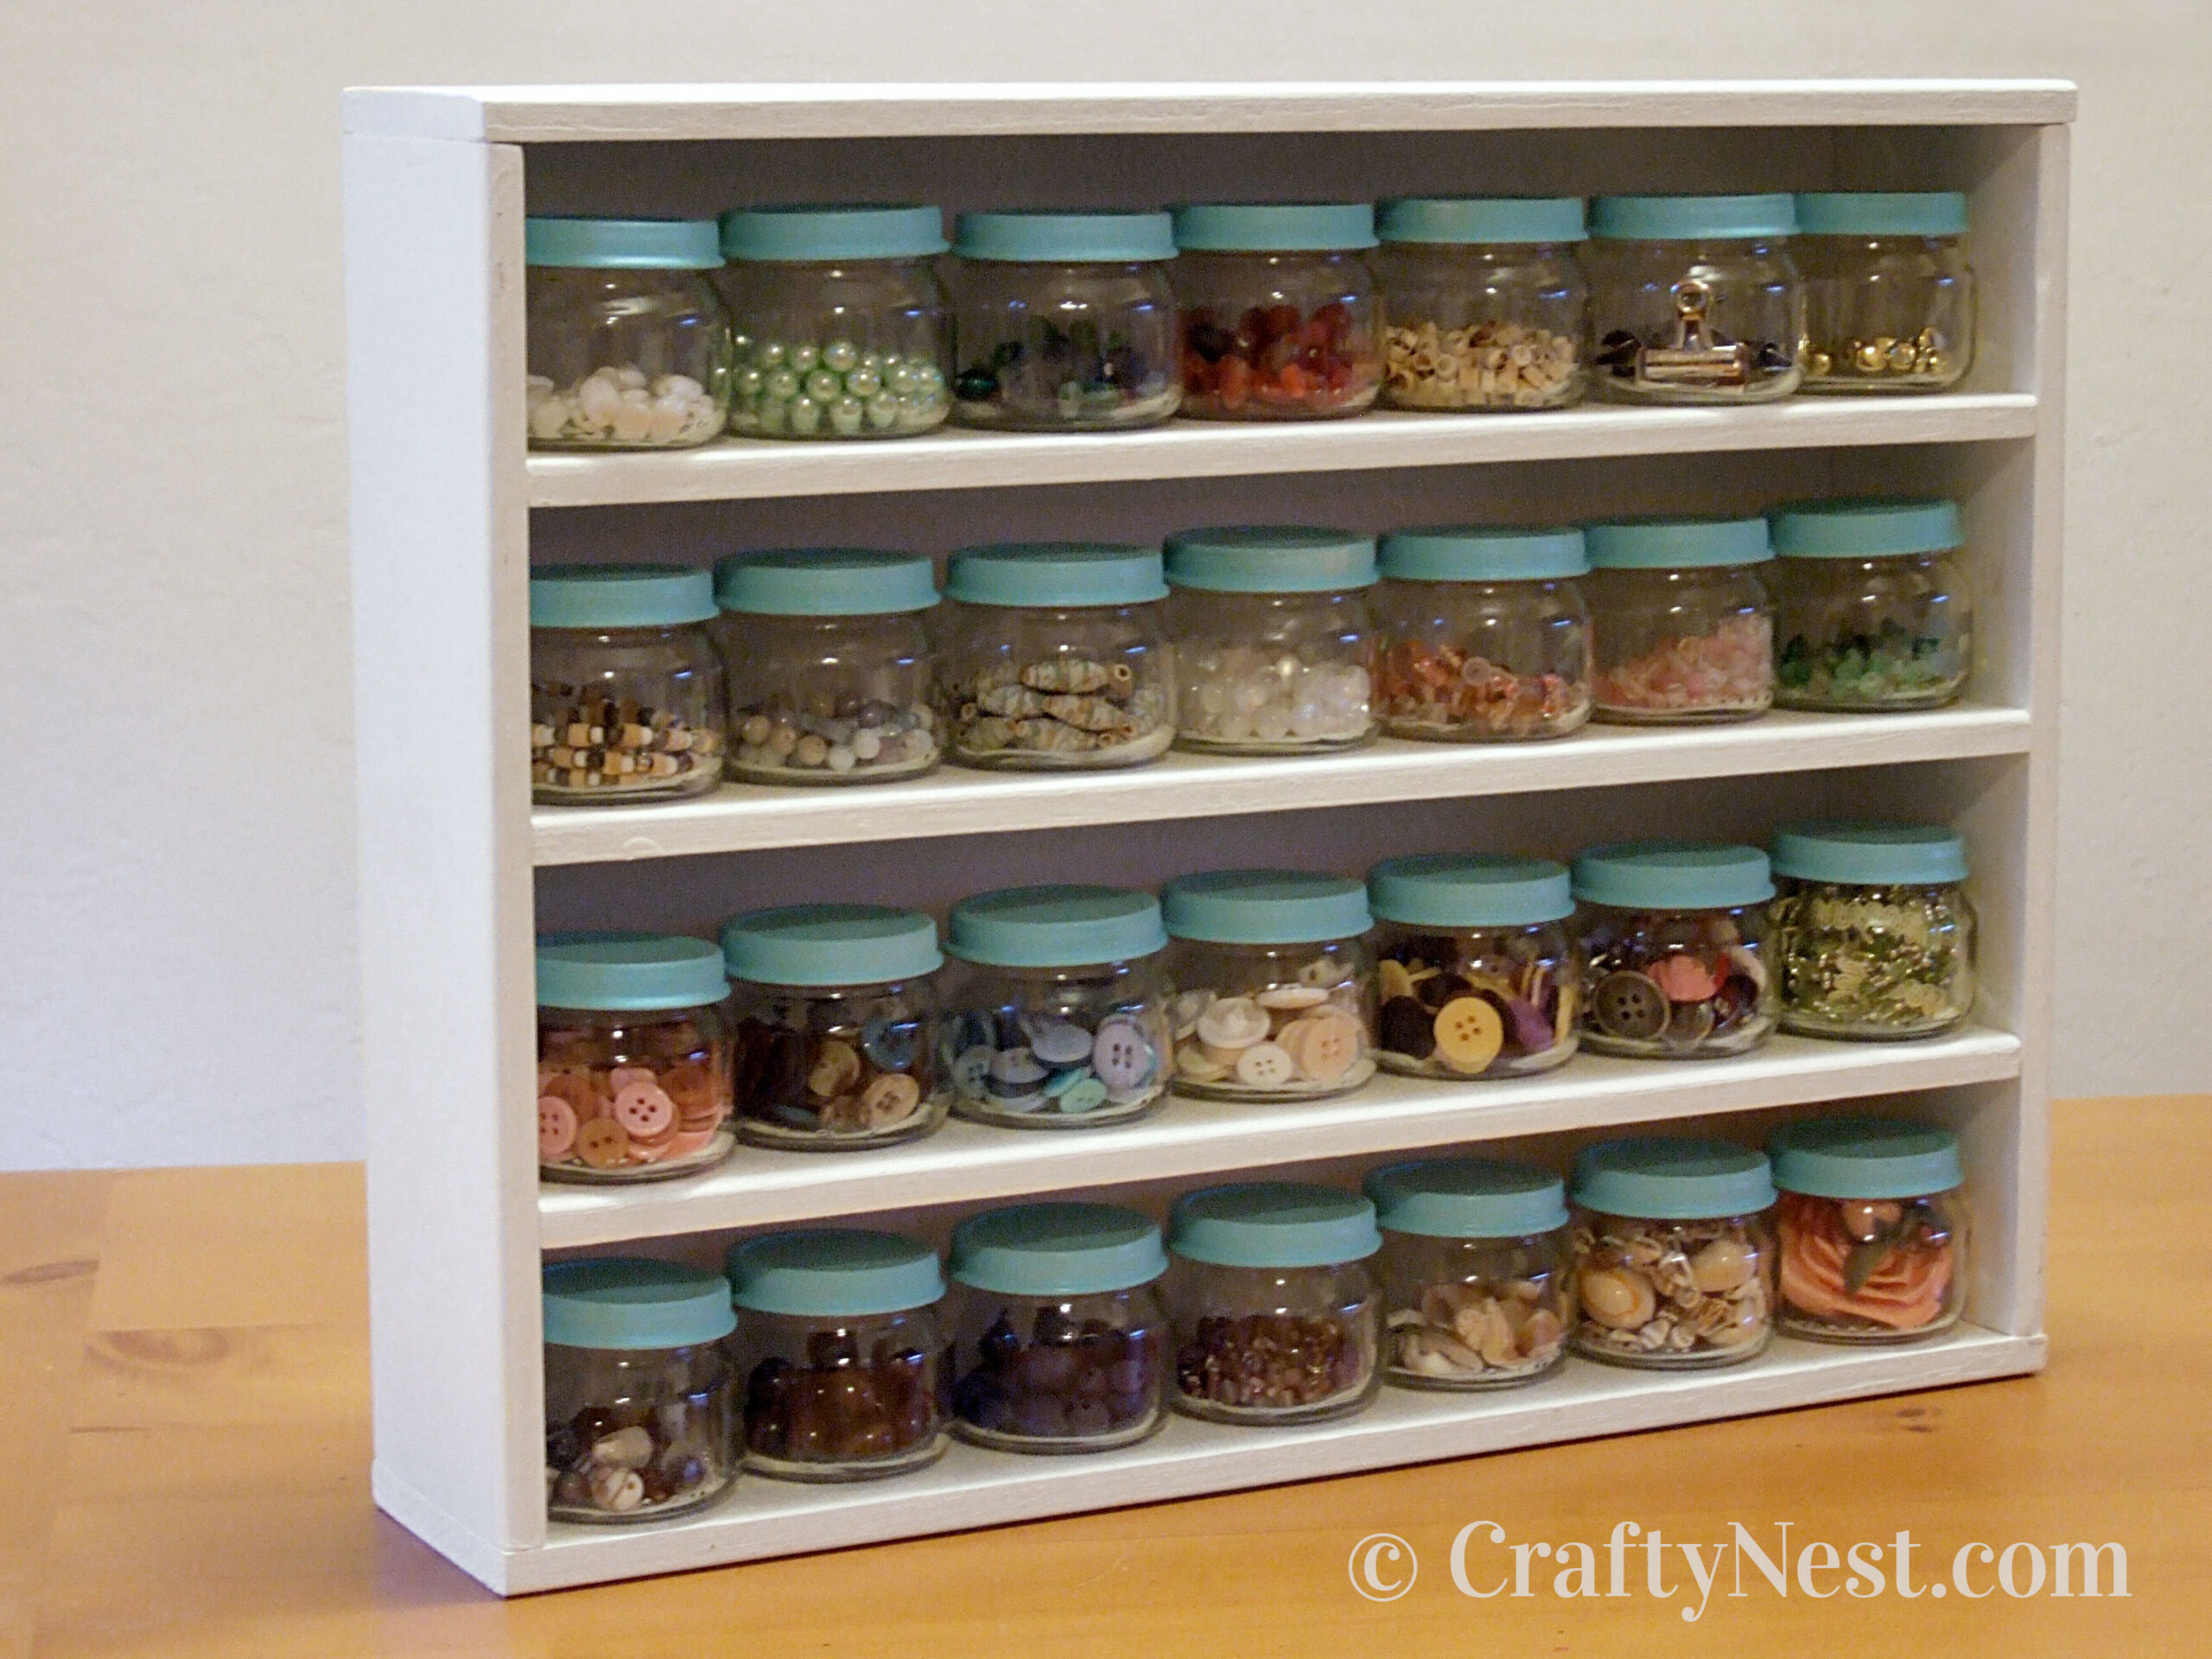 Wooden rack with baby-food jars filled with odds and ends, photo